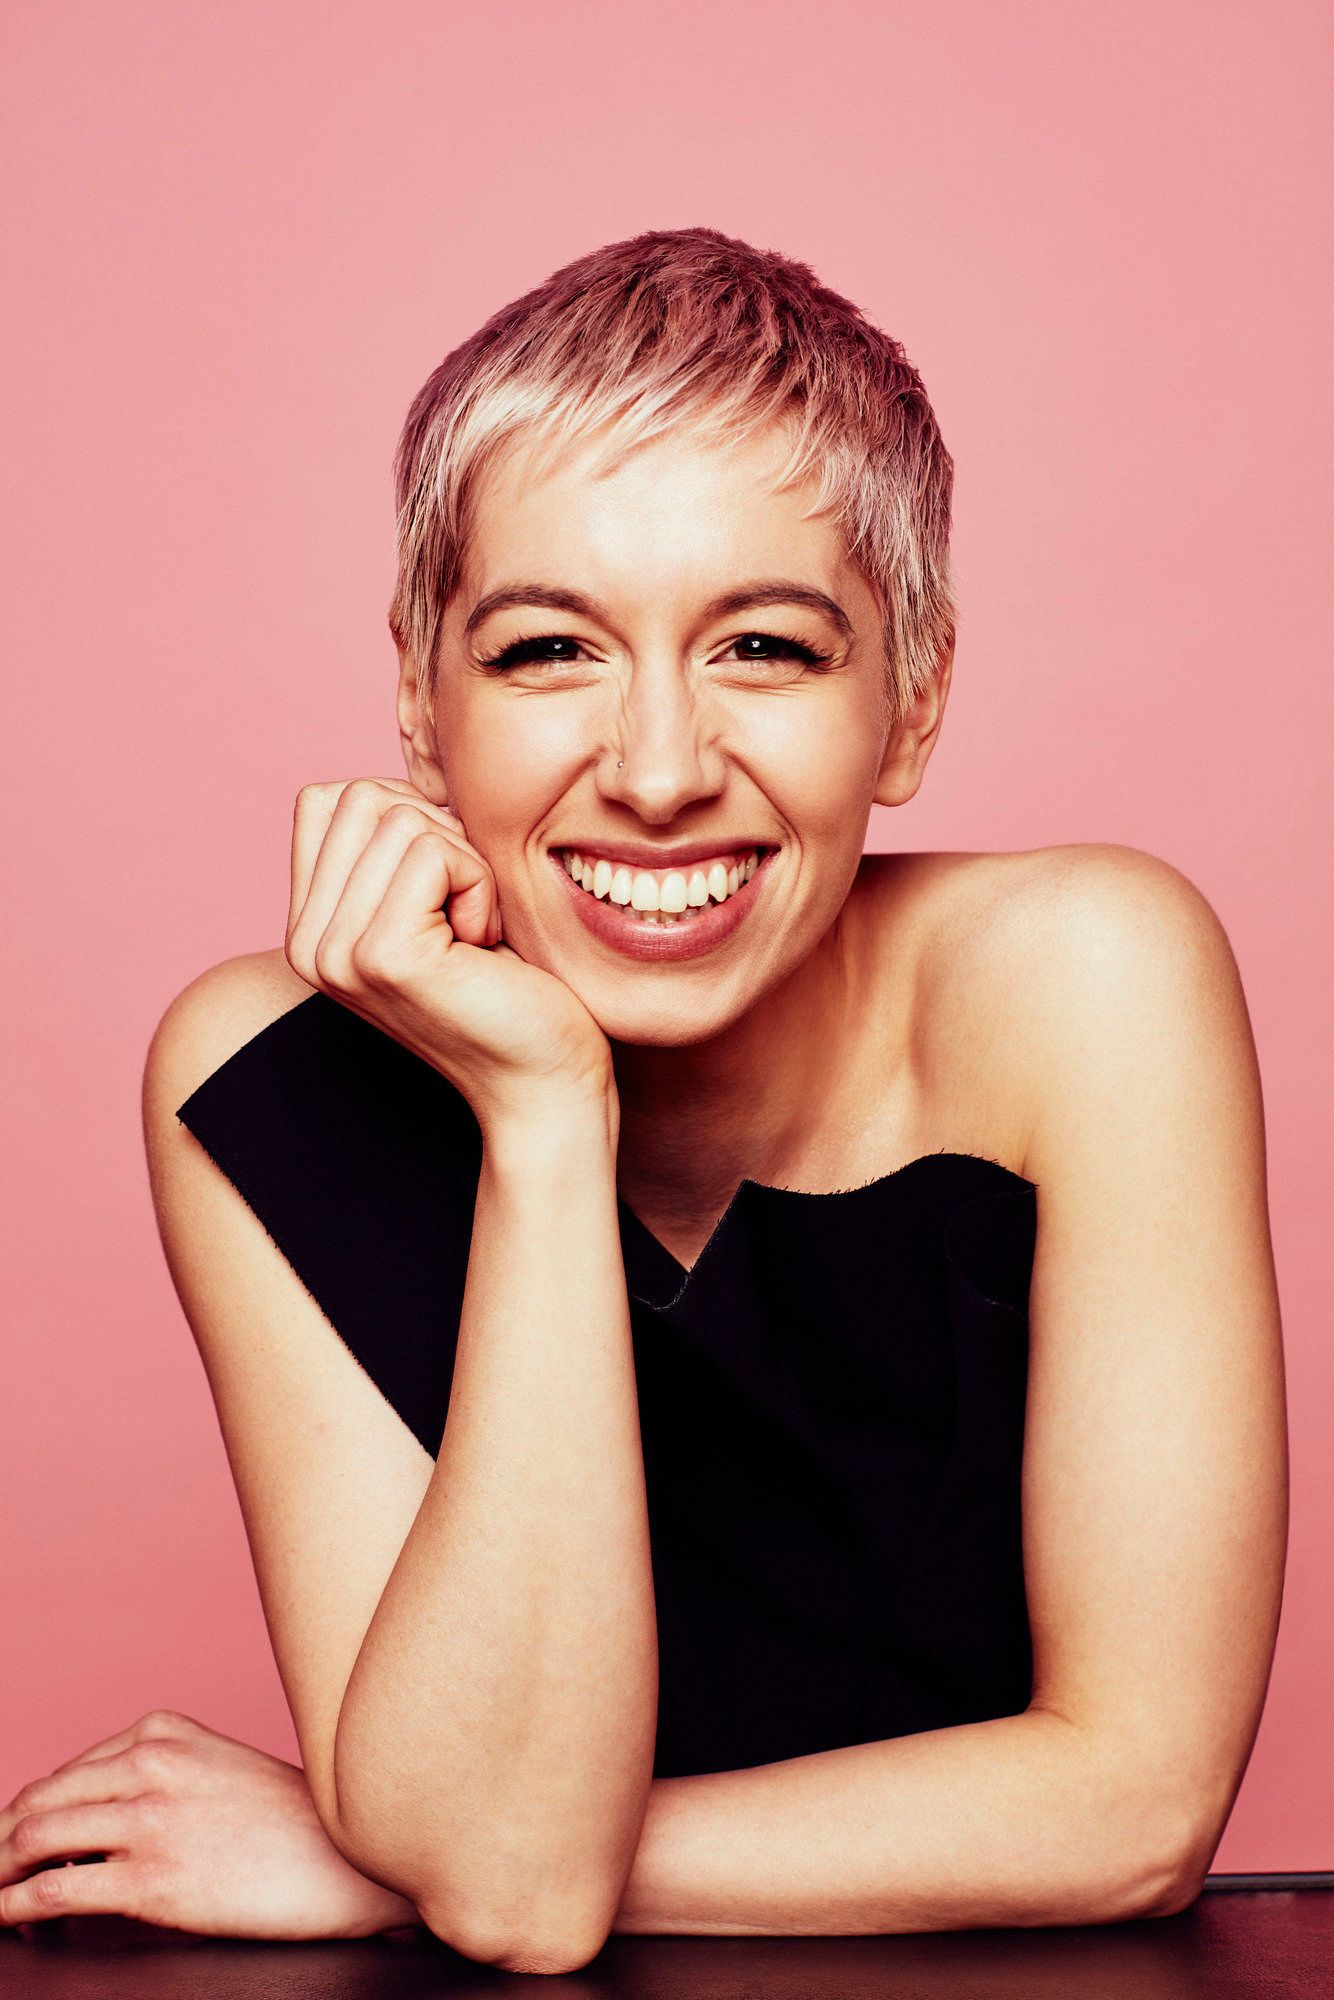 UK Entrant SuRie Reveals How She Thinks The Eurovision Song Contest 'Could Save The